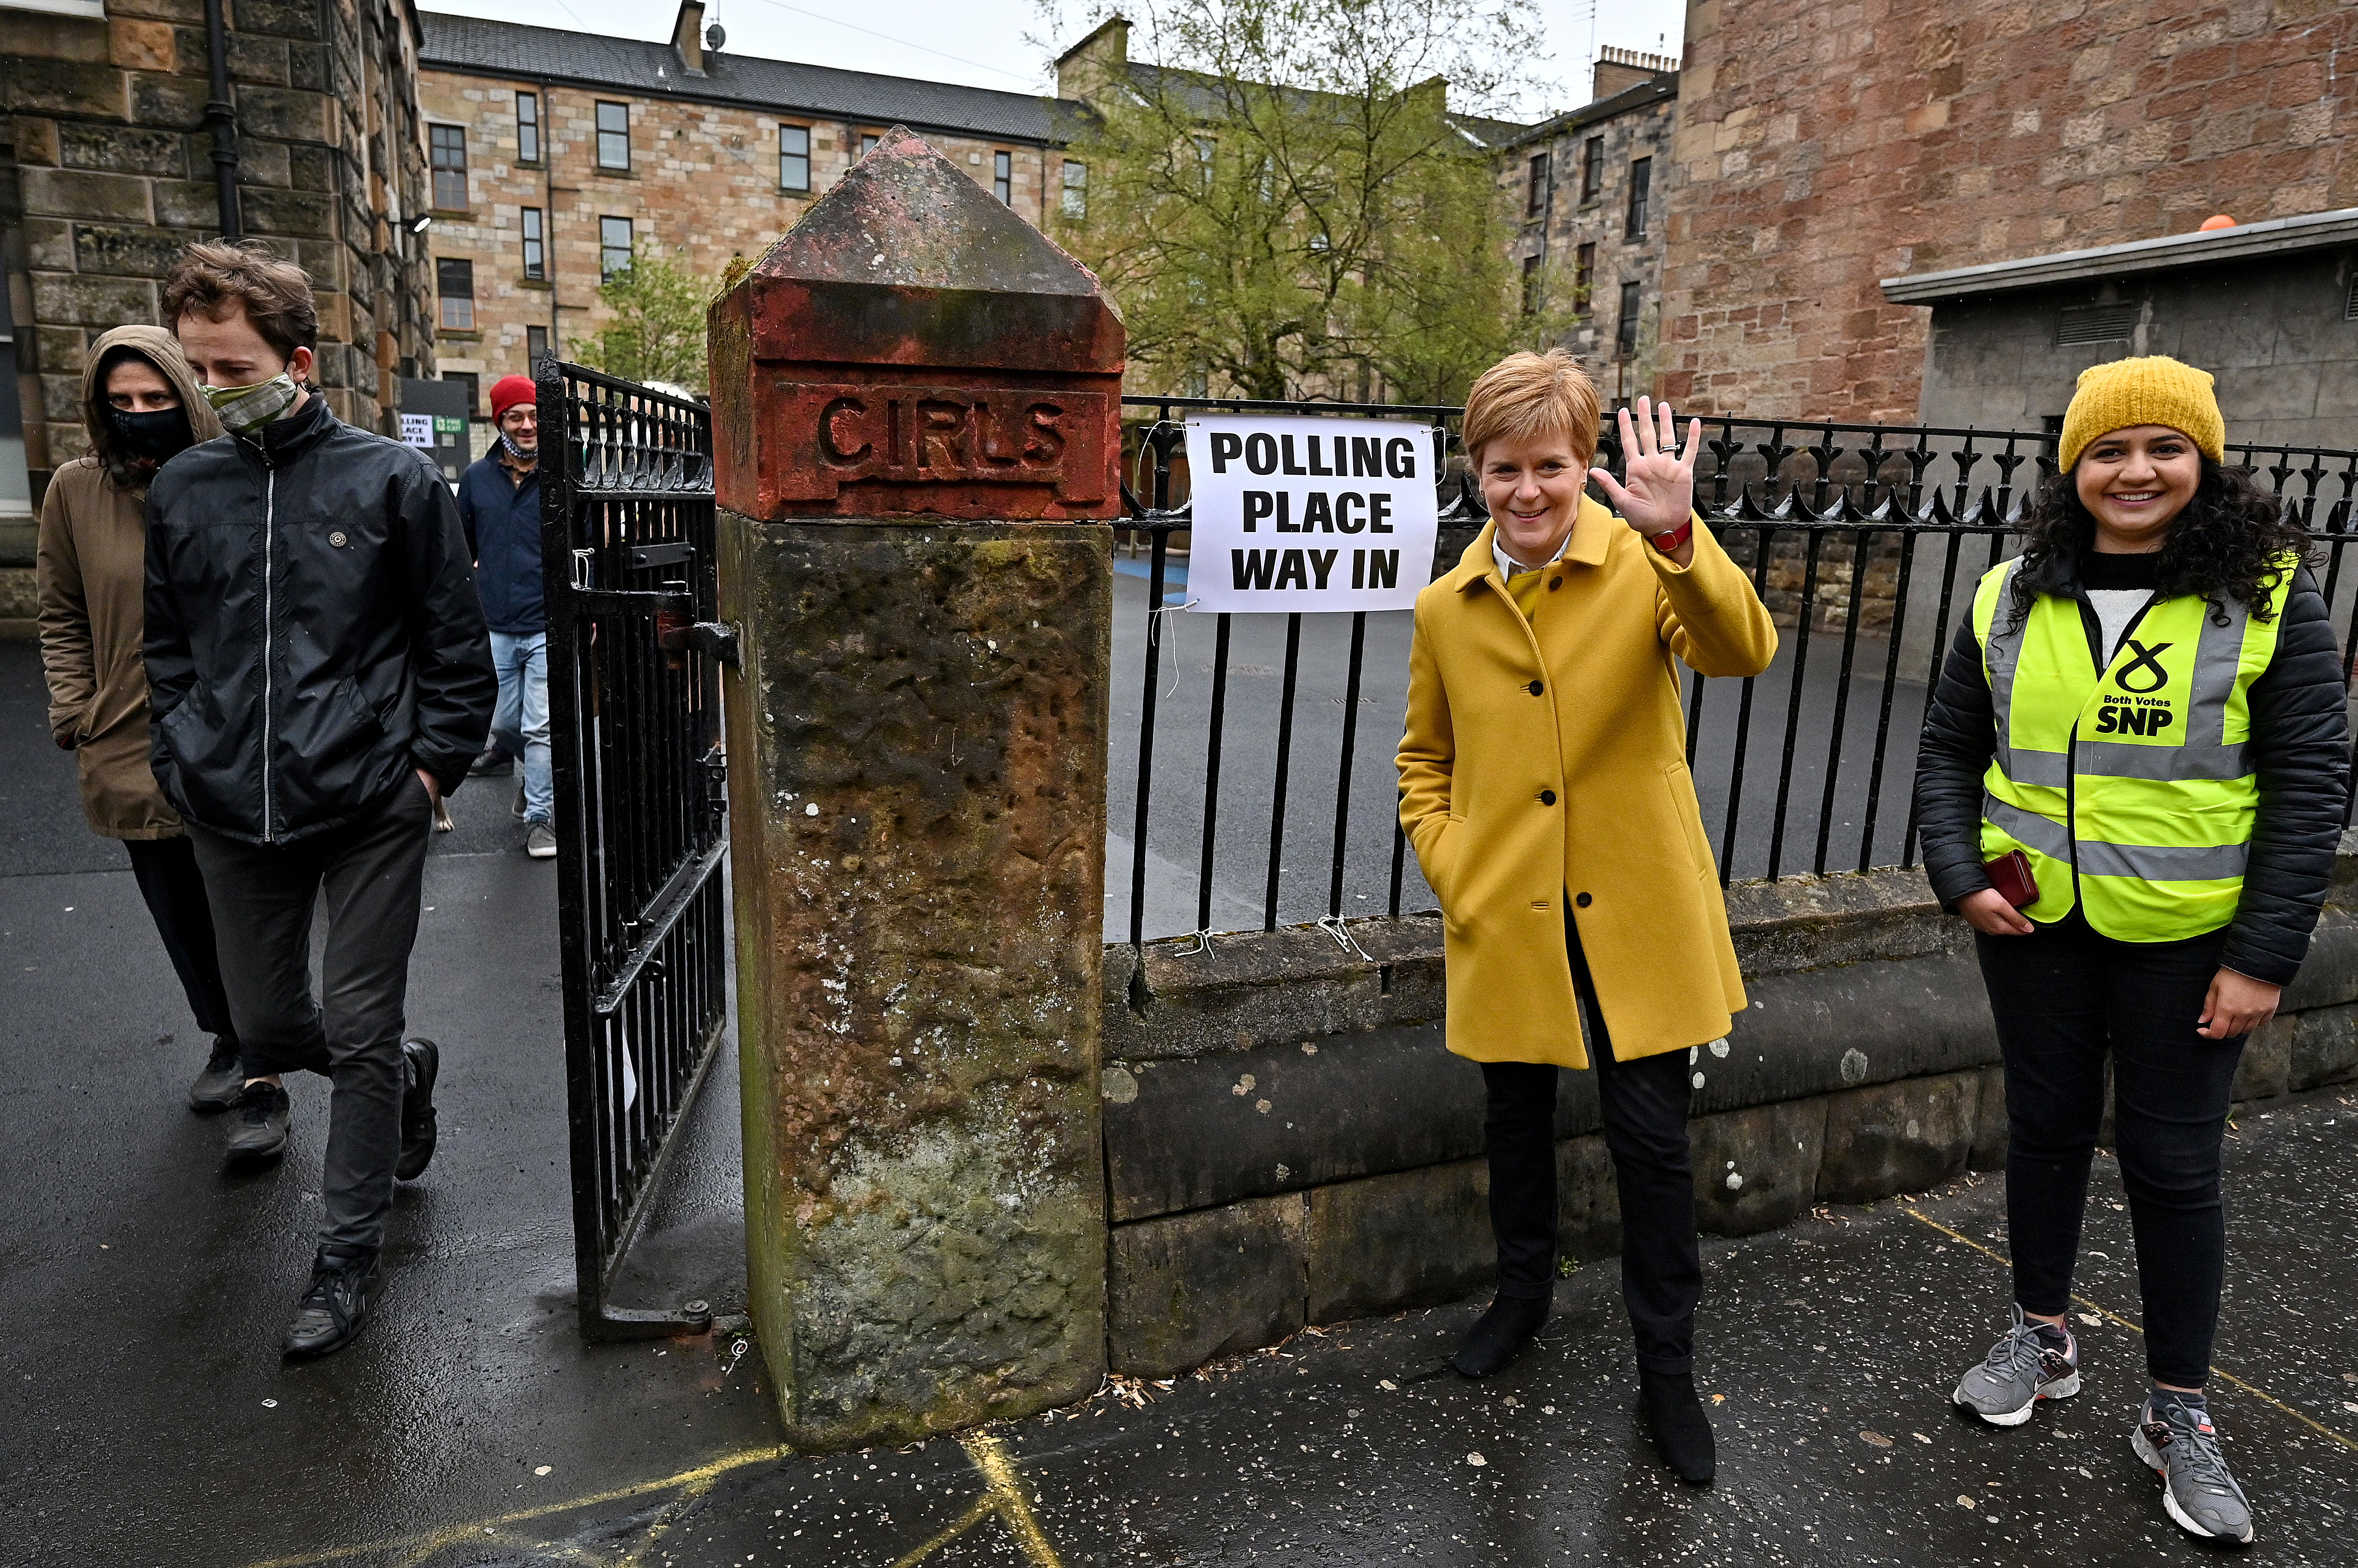 Scotland's First Minister Nicola Sturgeon and candidate Roza Salih meet voters at Annette Street School polling station as Scotland's parliamentary election voting has begun, in Glasgow, Britain, May 6, 2021 . Jeff J Mitchell/Pool via REUTERS